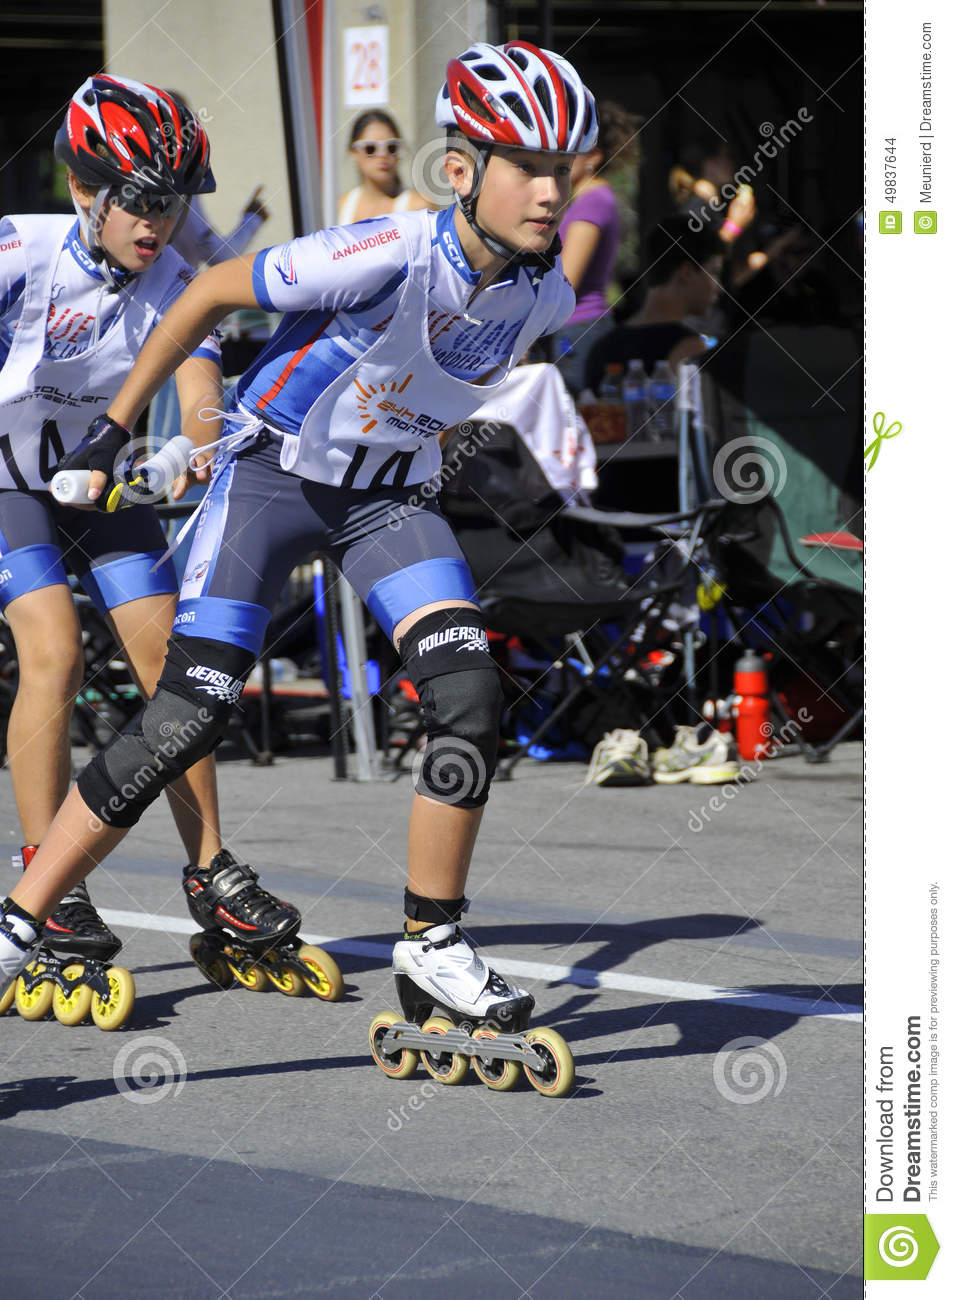 Roller skating montreal - Roller Montreal Editorial Stock Image